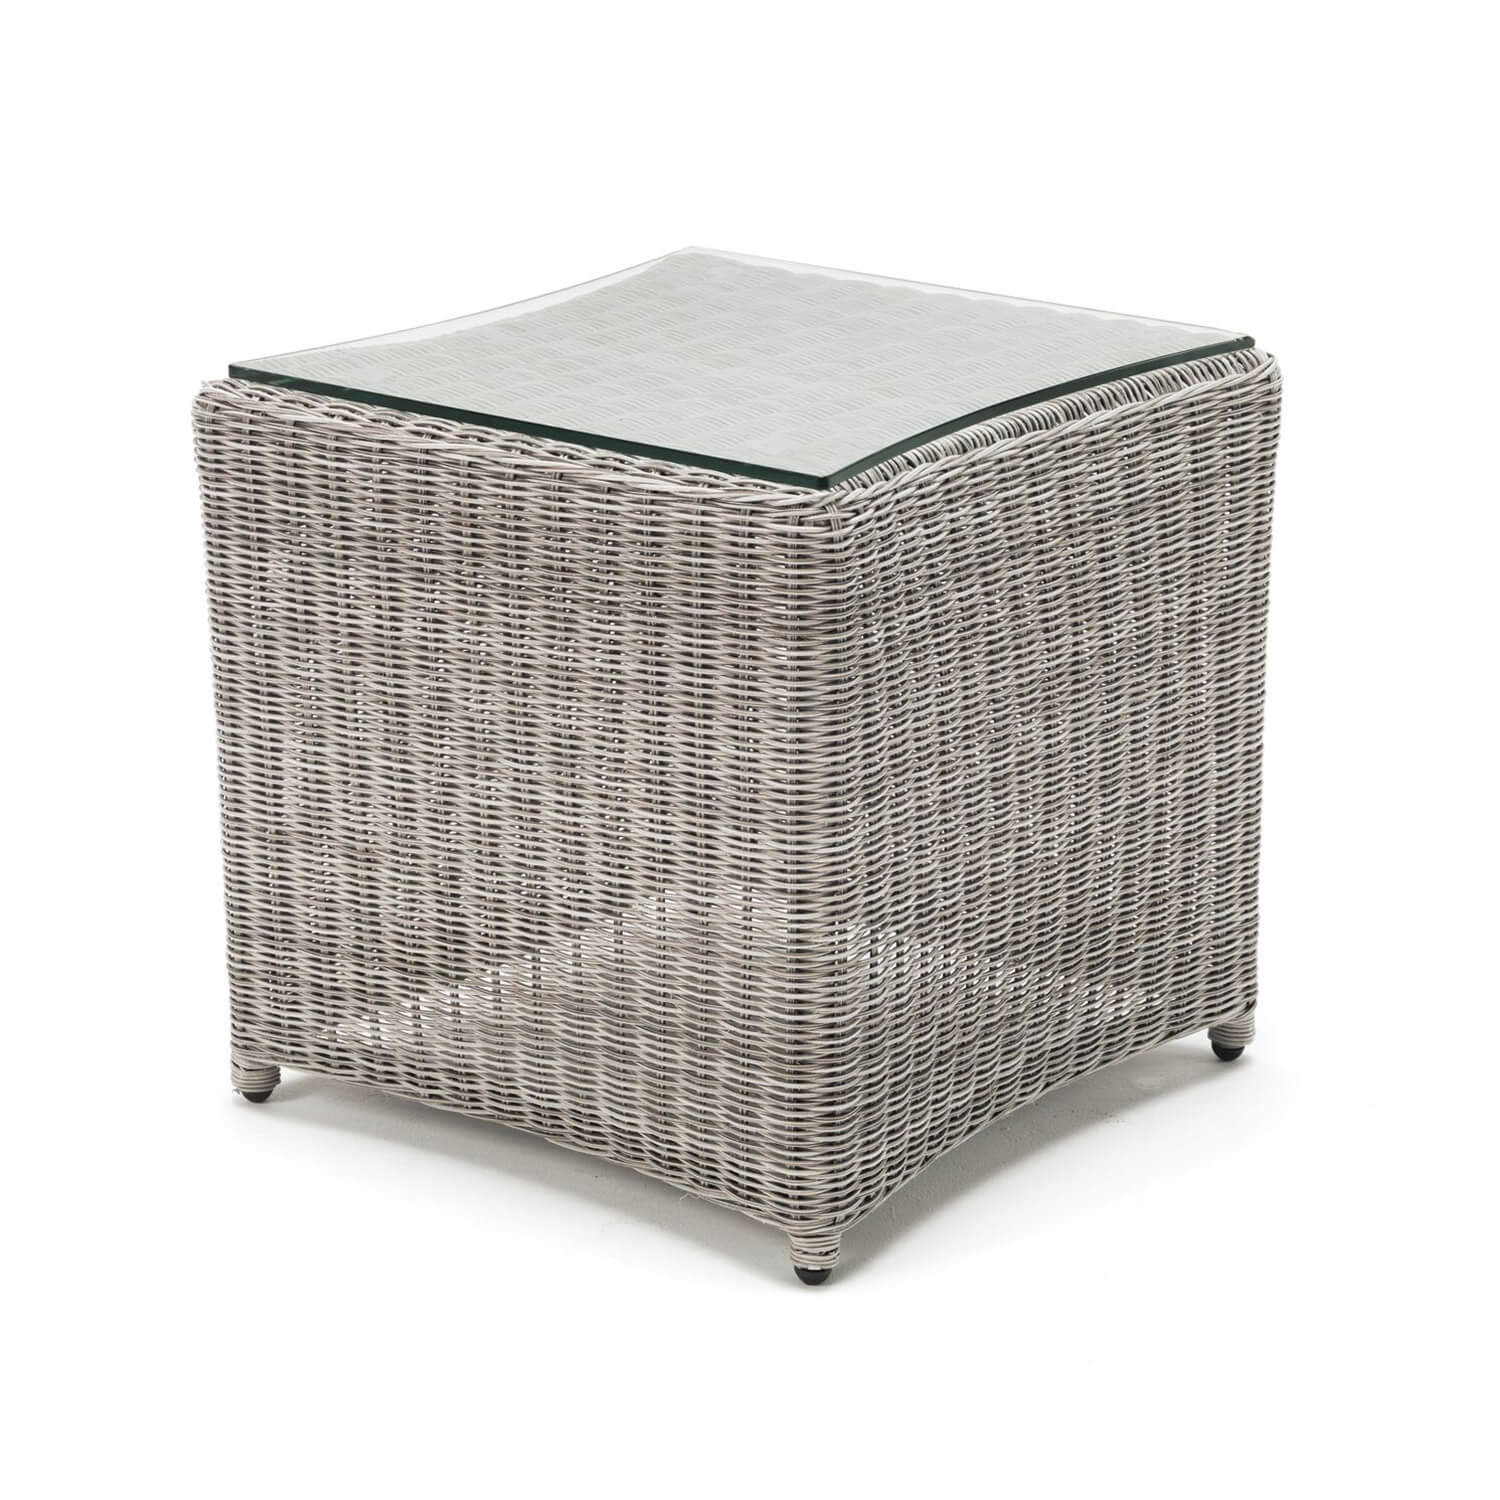 Picture of: Kettler Palma Glass Top Side Table 45 X 45cm White Wash 92 Garden4less Uk Shop